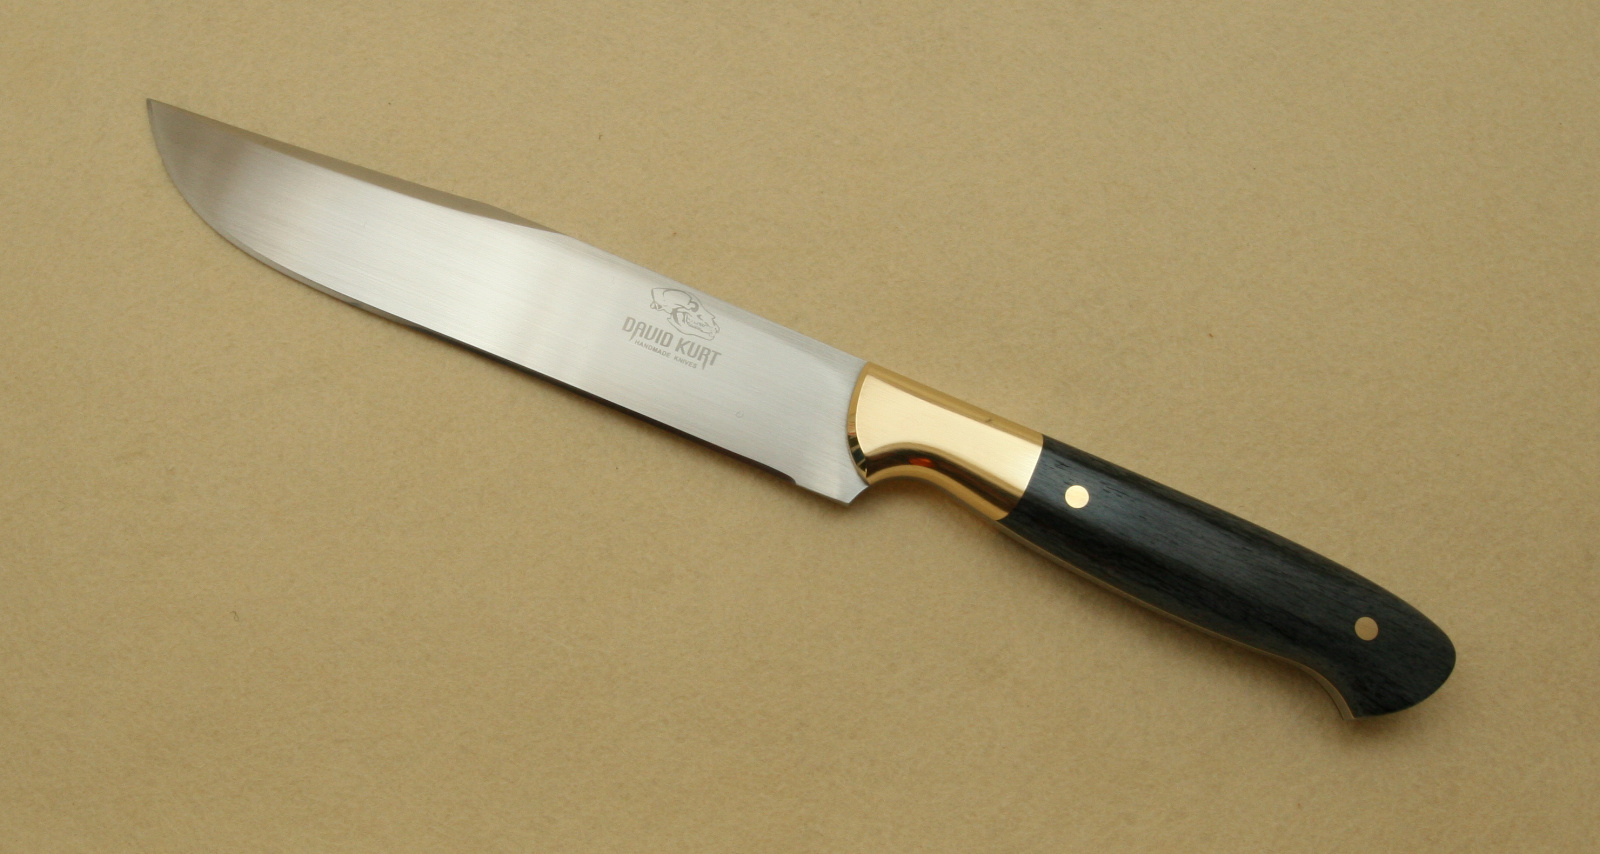 David Kurt Trade Knife